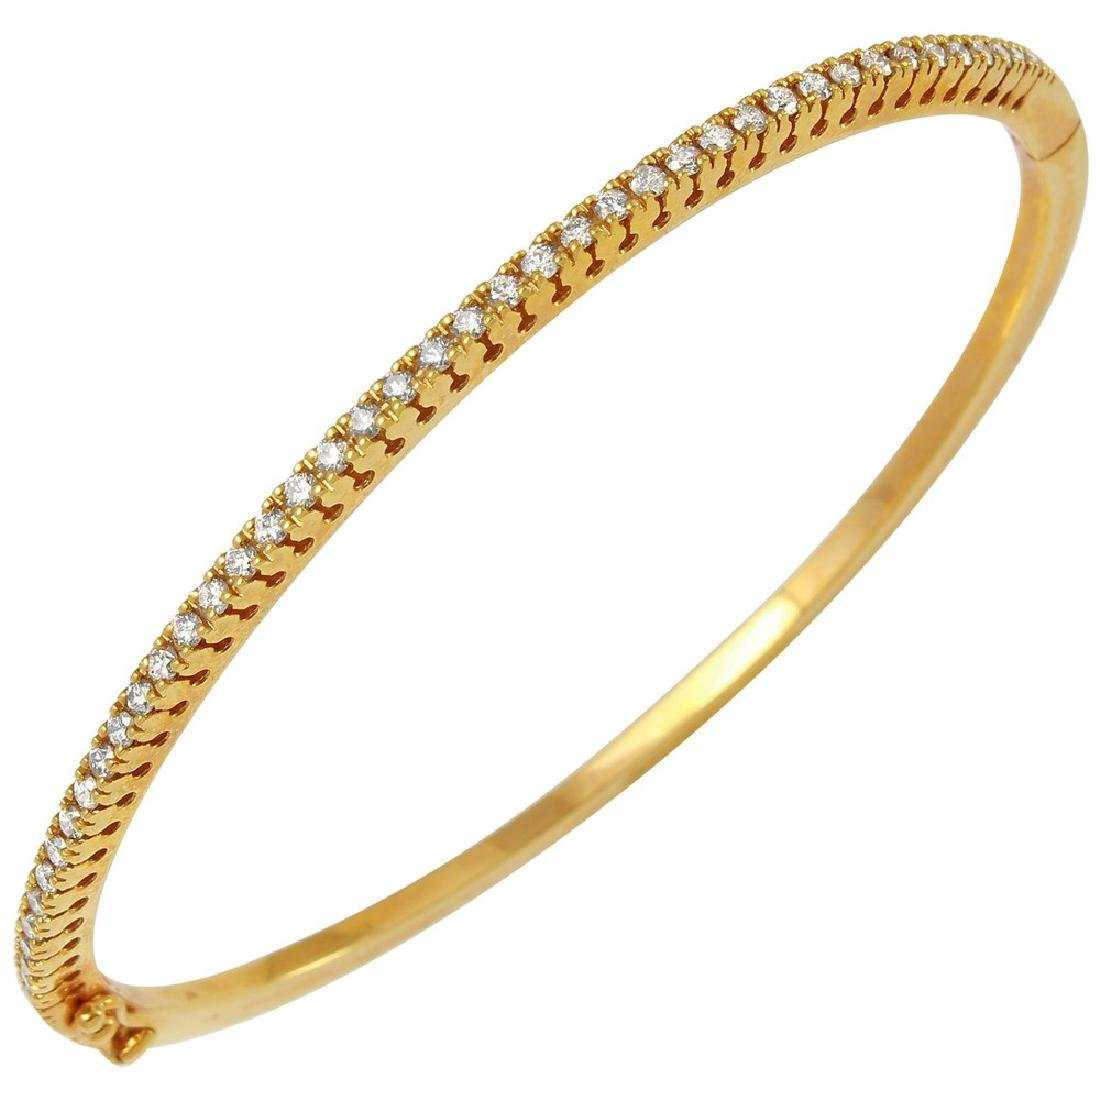 0.84CTW Diamond Bangle Bracelet in 14K Yellow Gold - 2